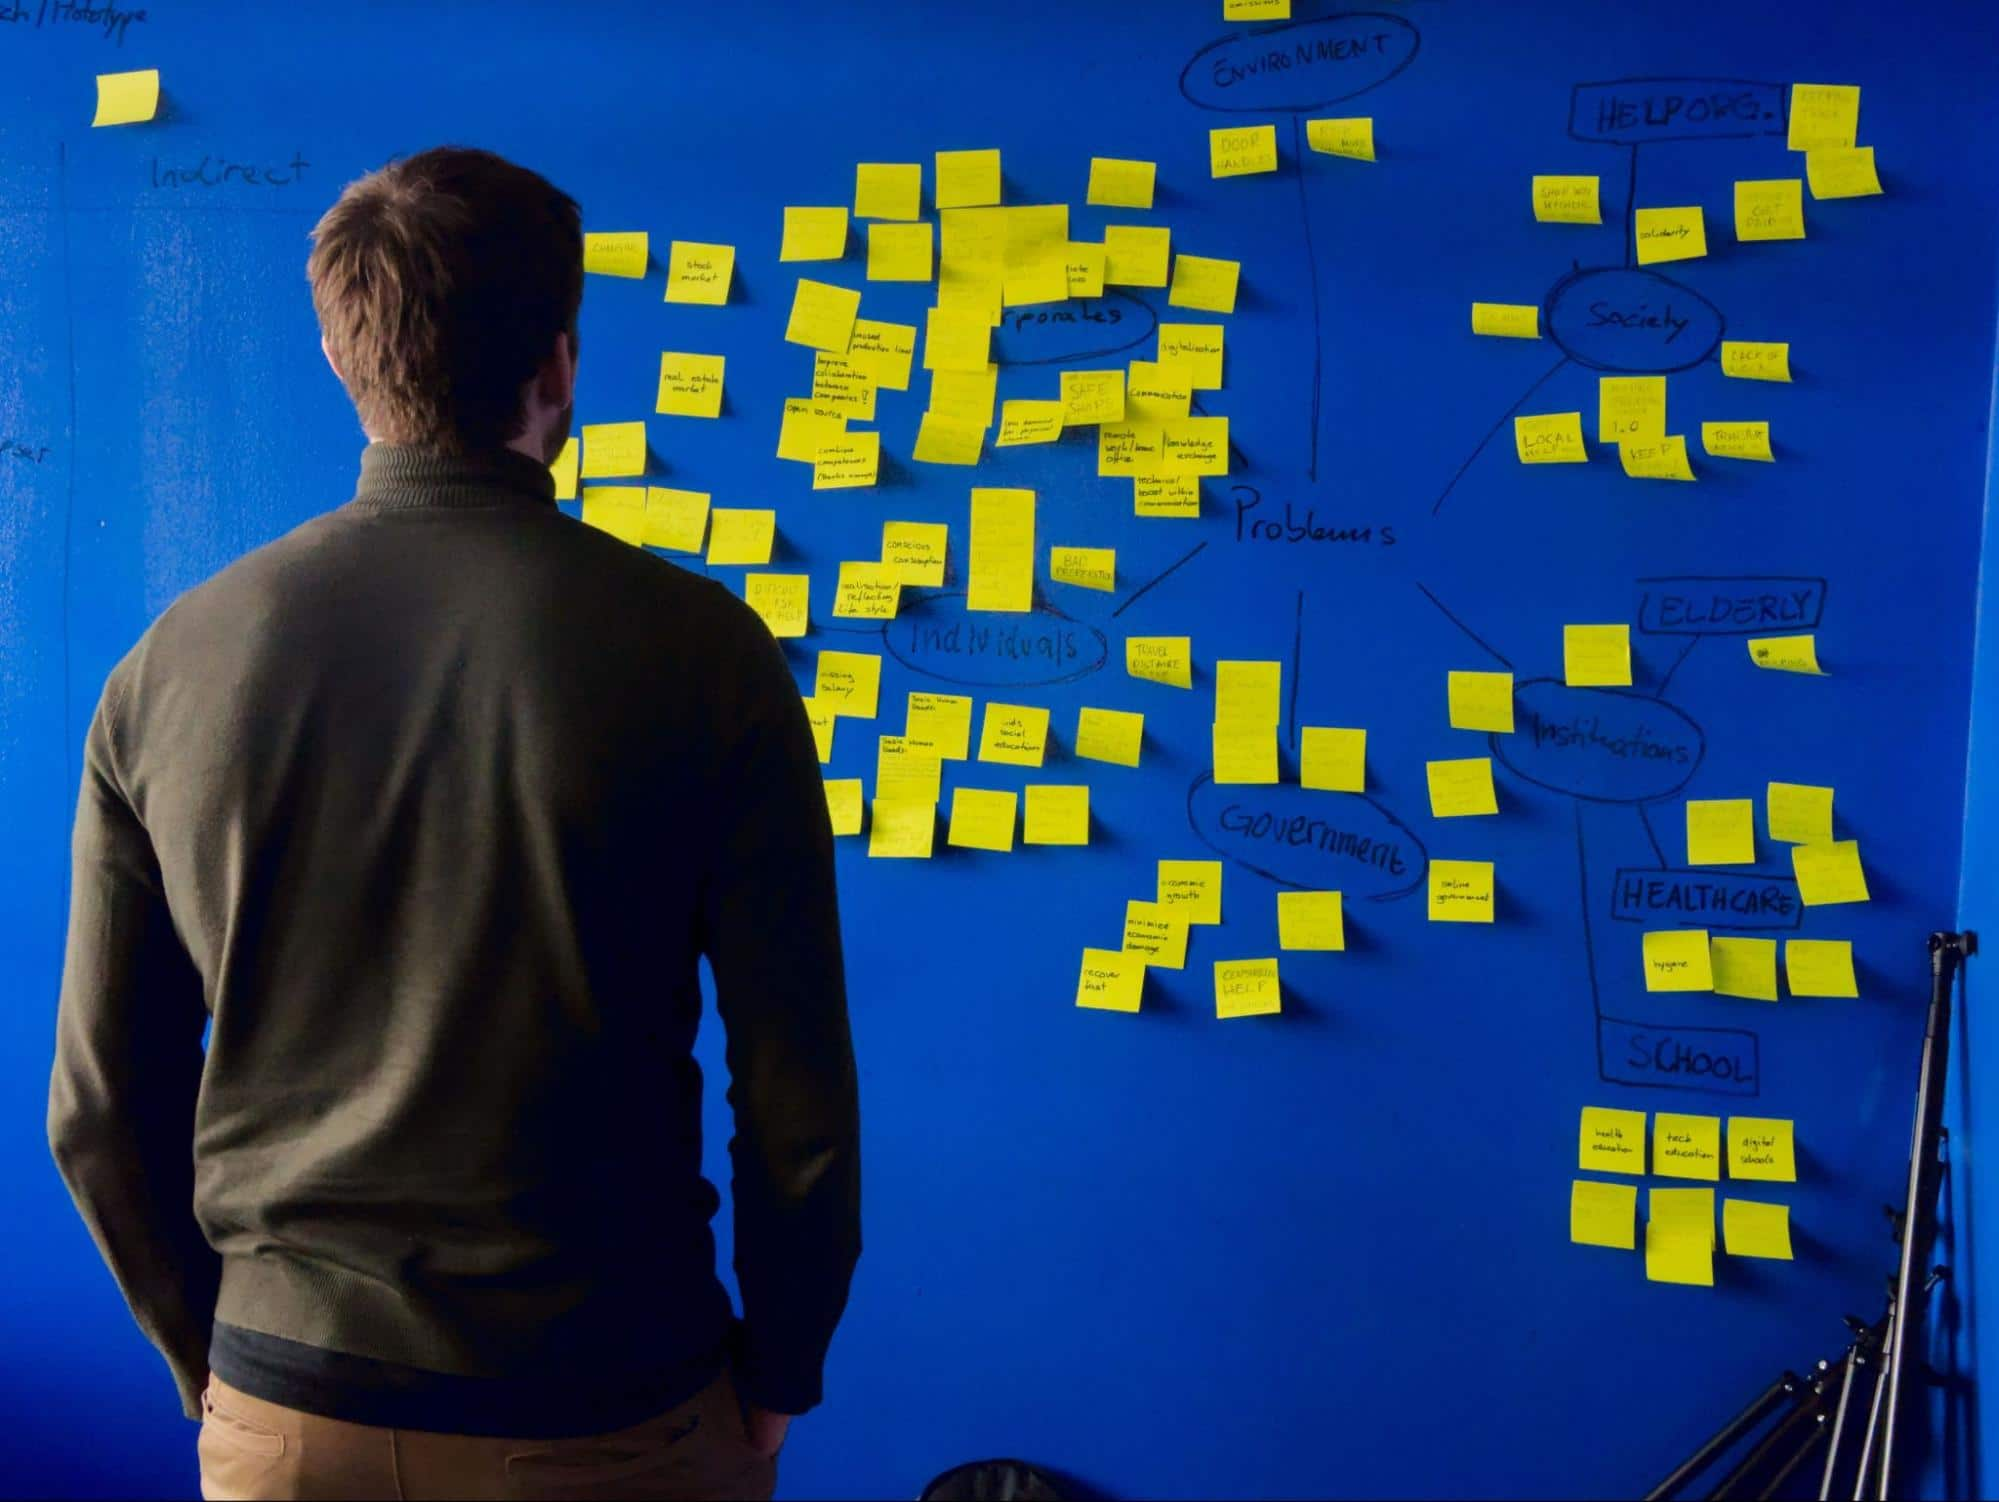 man facing a blue wall with yellow sticky notes